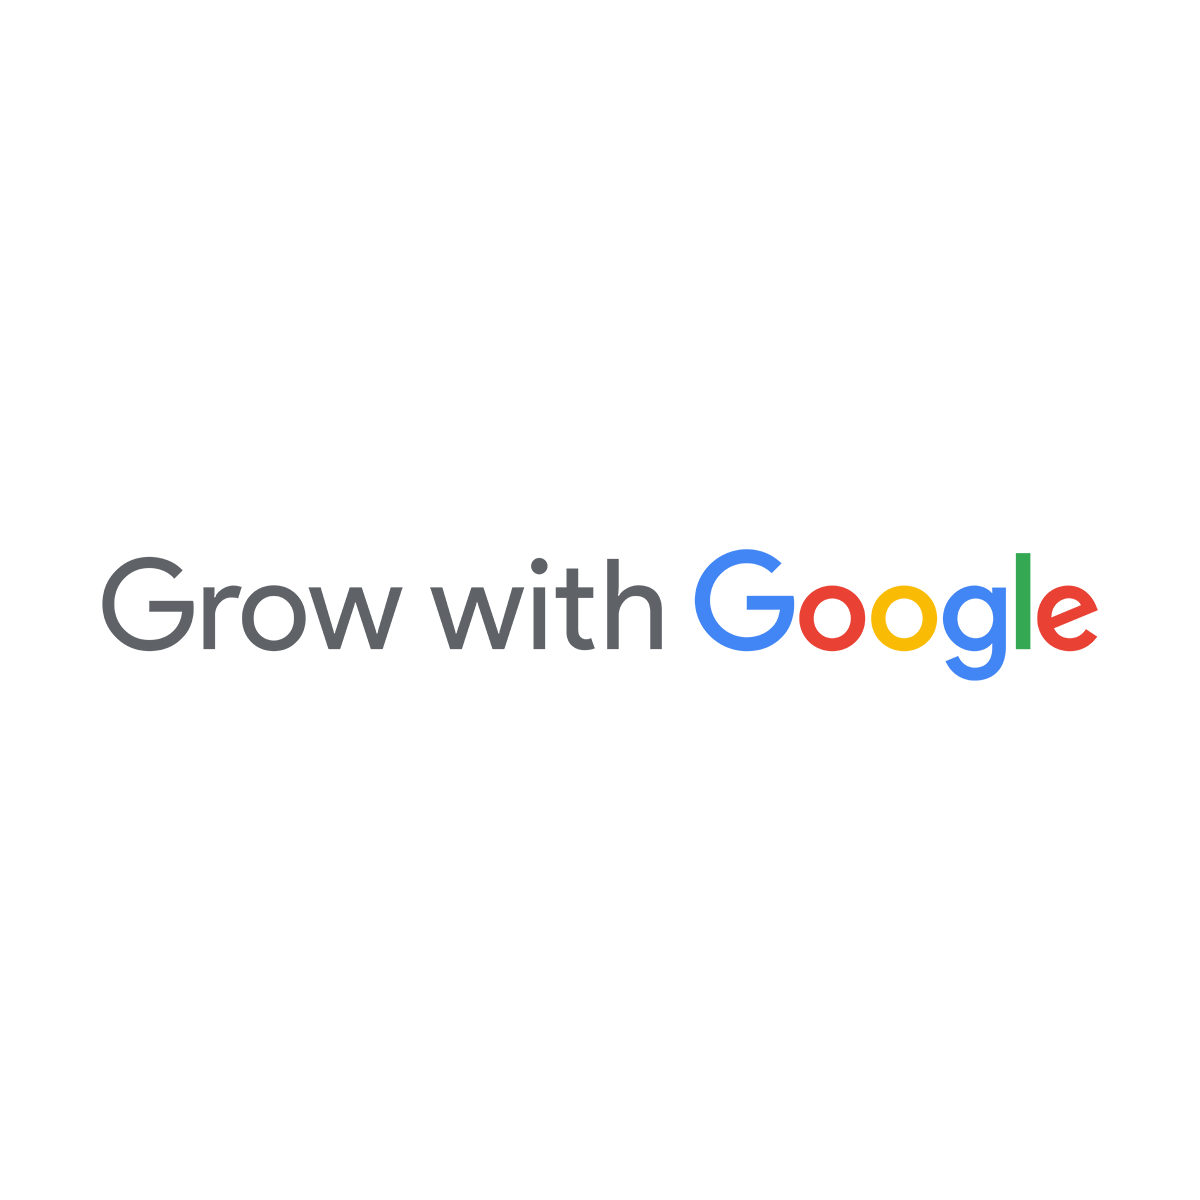 IT Support Certificate Training Program - Grow with Google